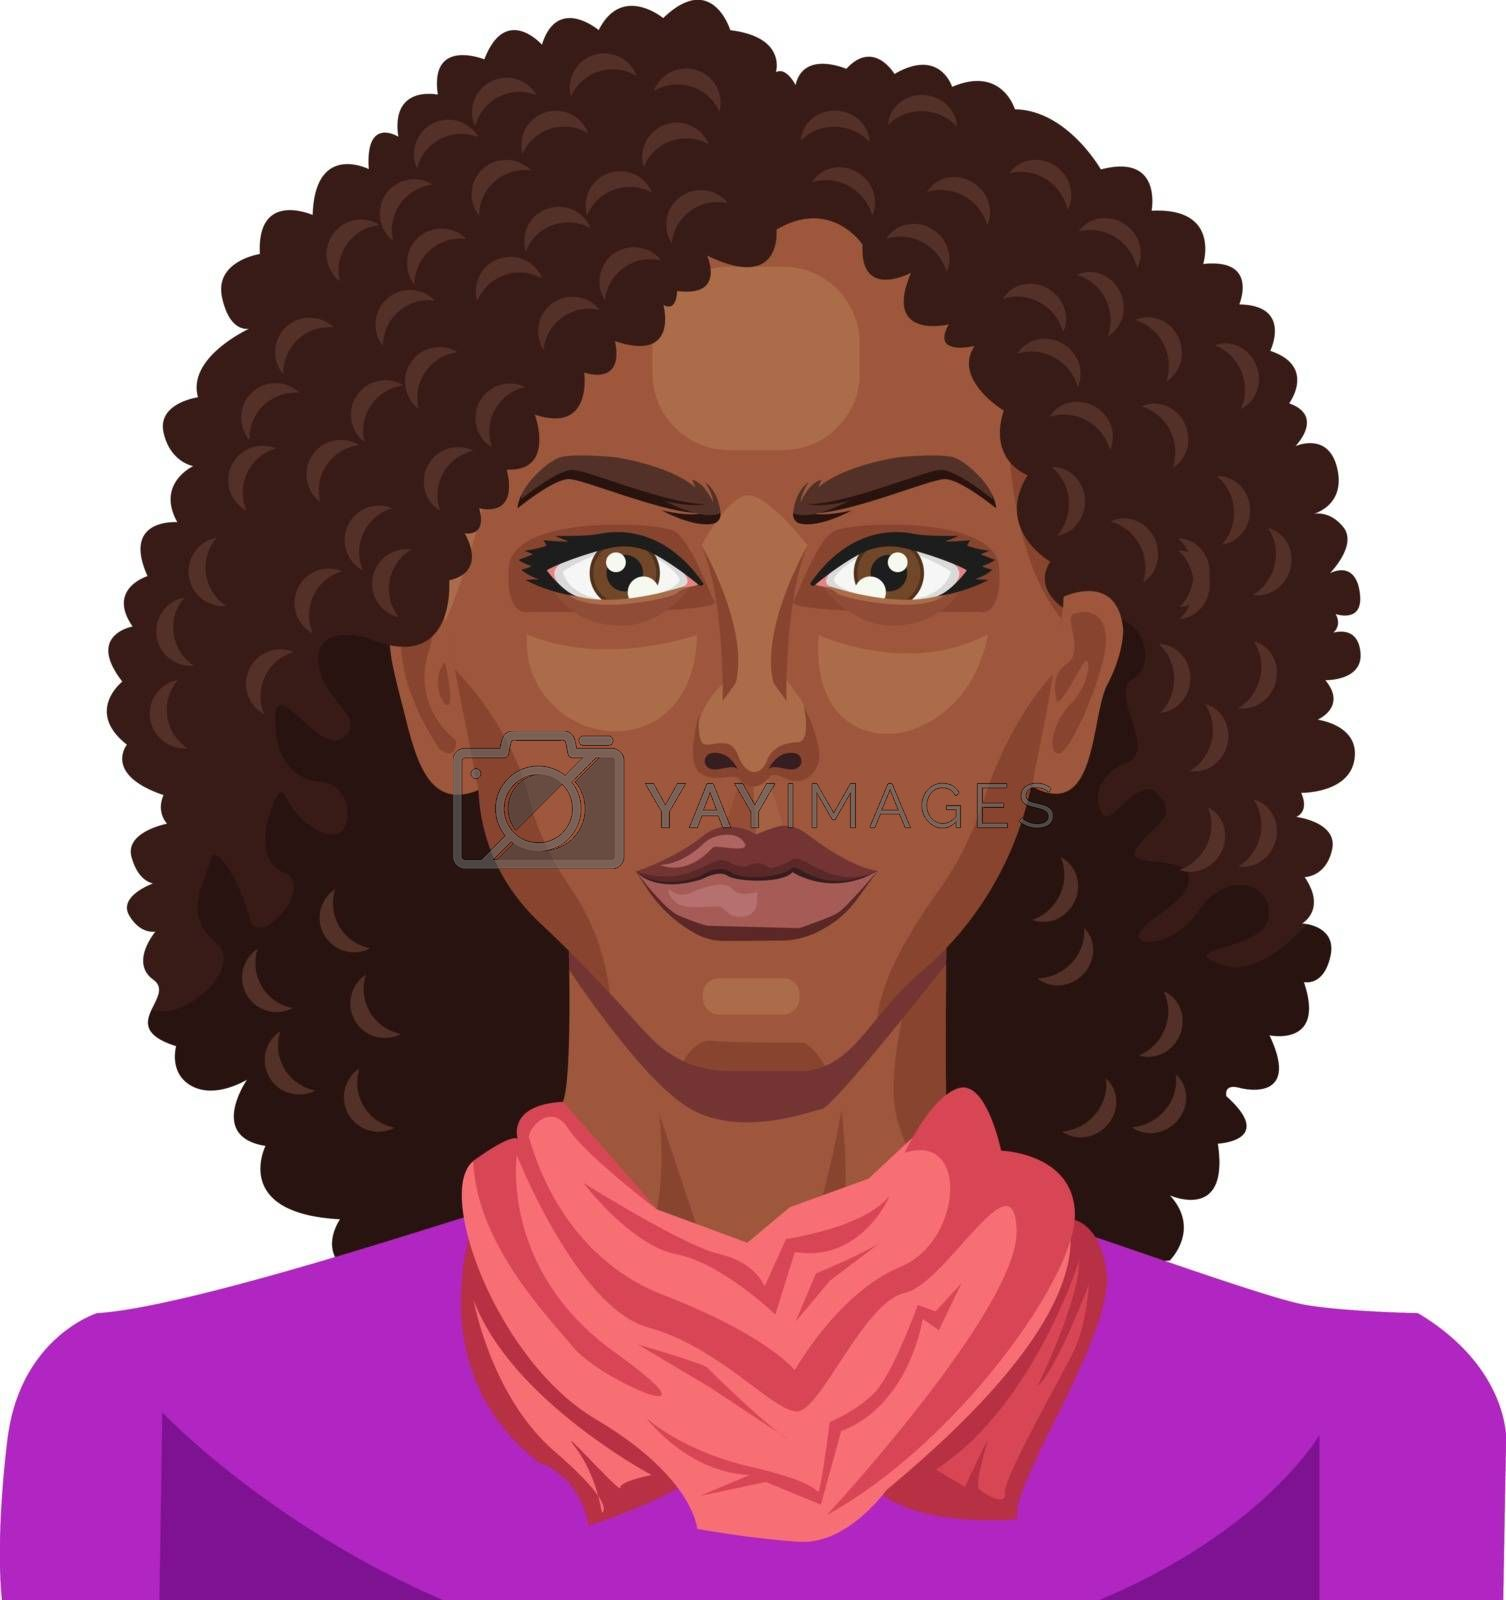 Royalty free image of Pretty afro girl with curly hair illustration vector on white ba by Morphart